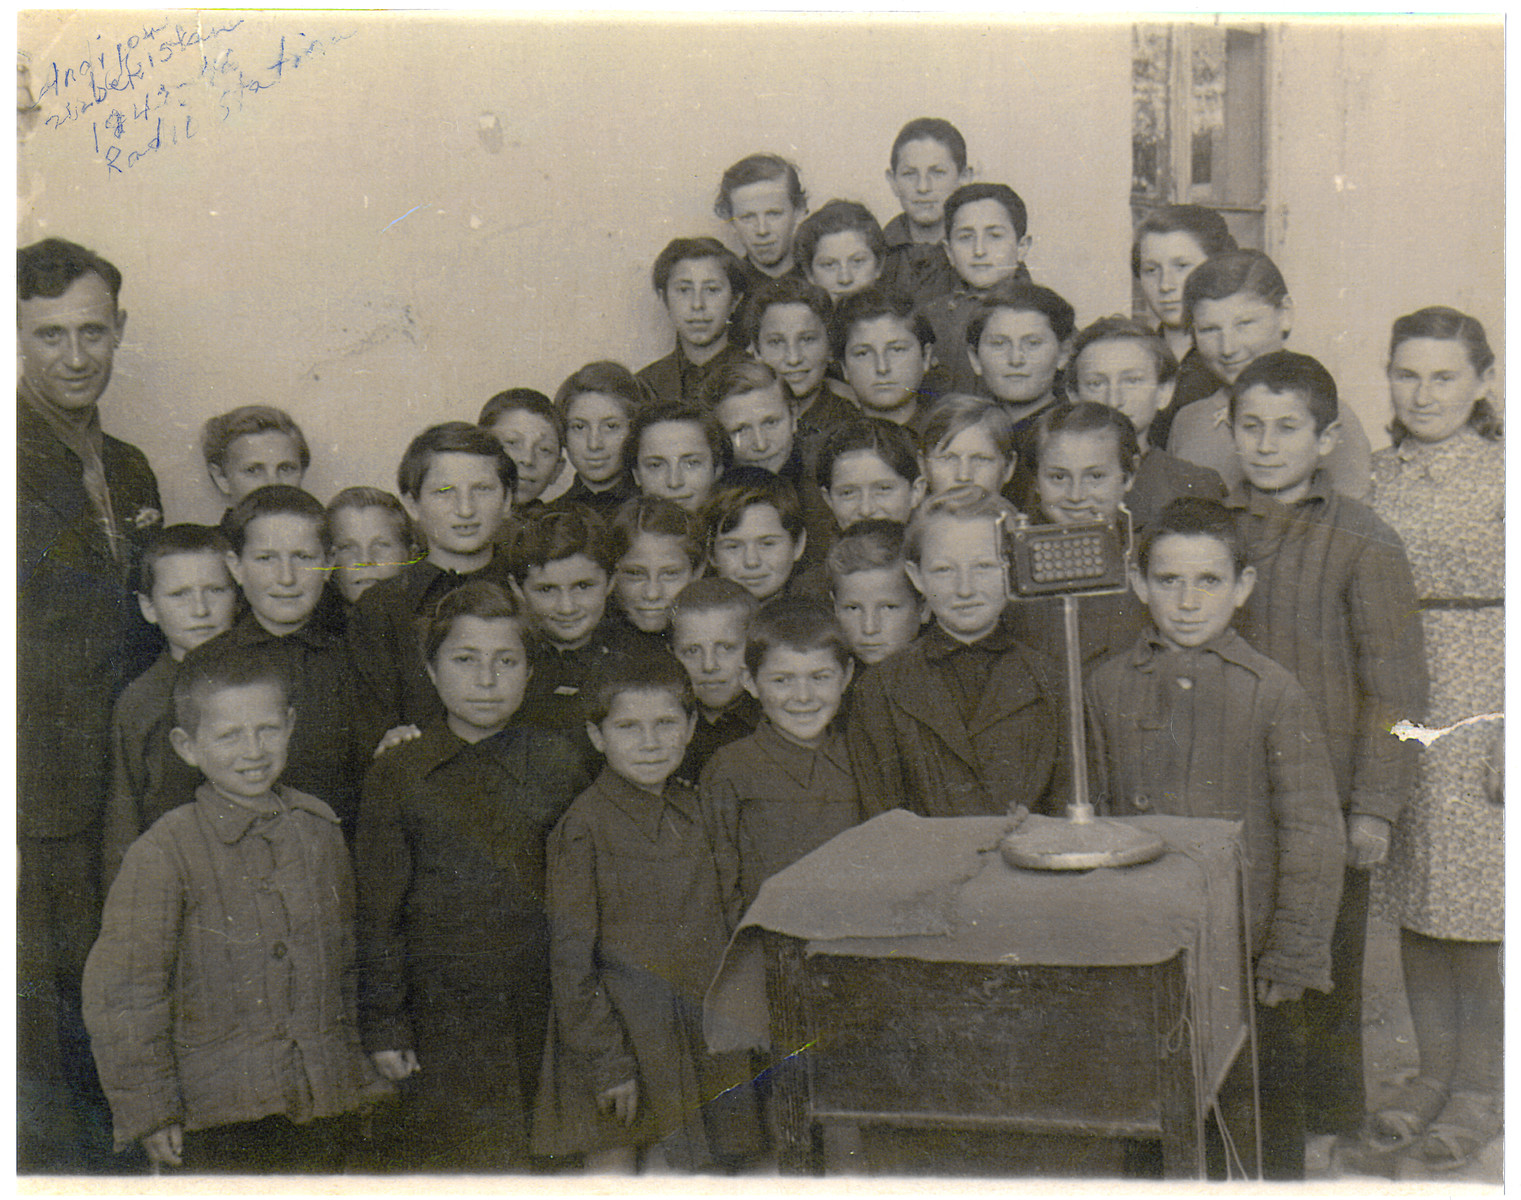 Polish refugee children from an orphanage in Uzbekistan broadcast songs in a radio station in Andizhan.  Among those pictured is Irena Ceder (second row, fourth from the left).